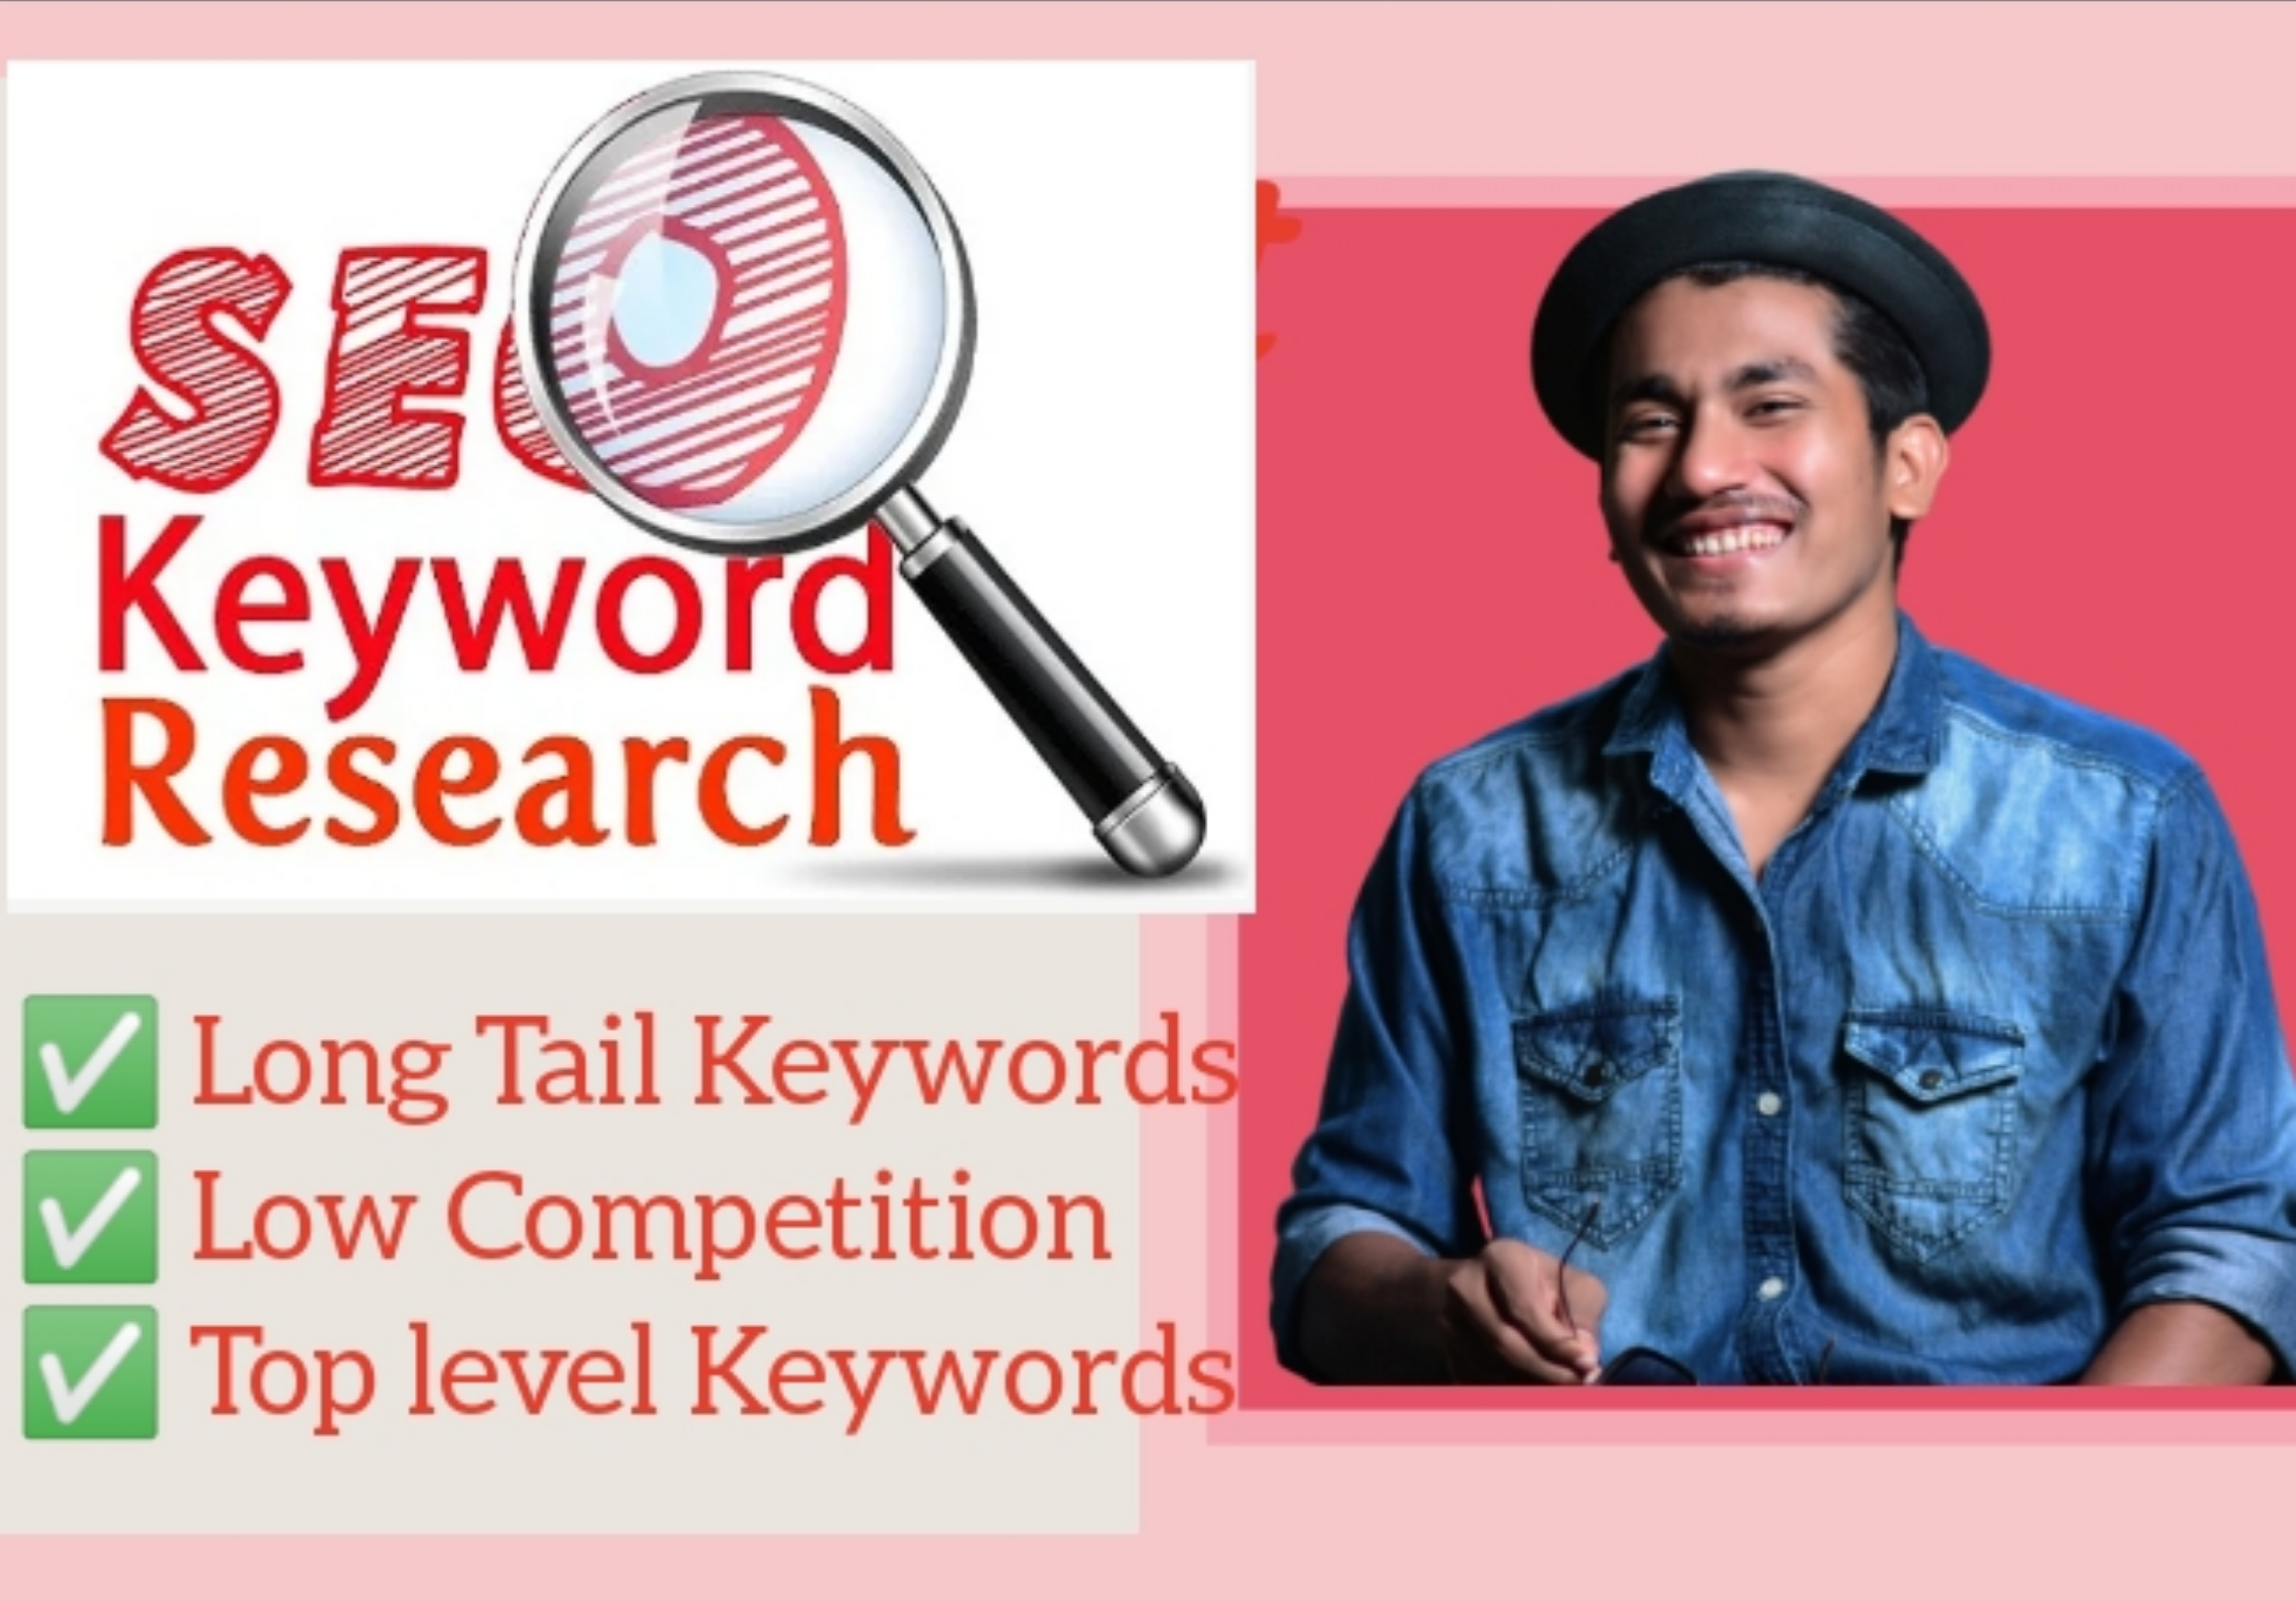 Do In-depth SEO Keywords Research and Competitor Analysis for your website niche